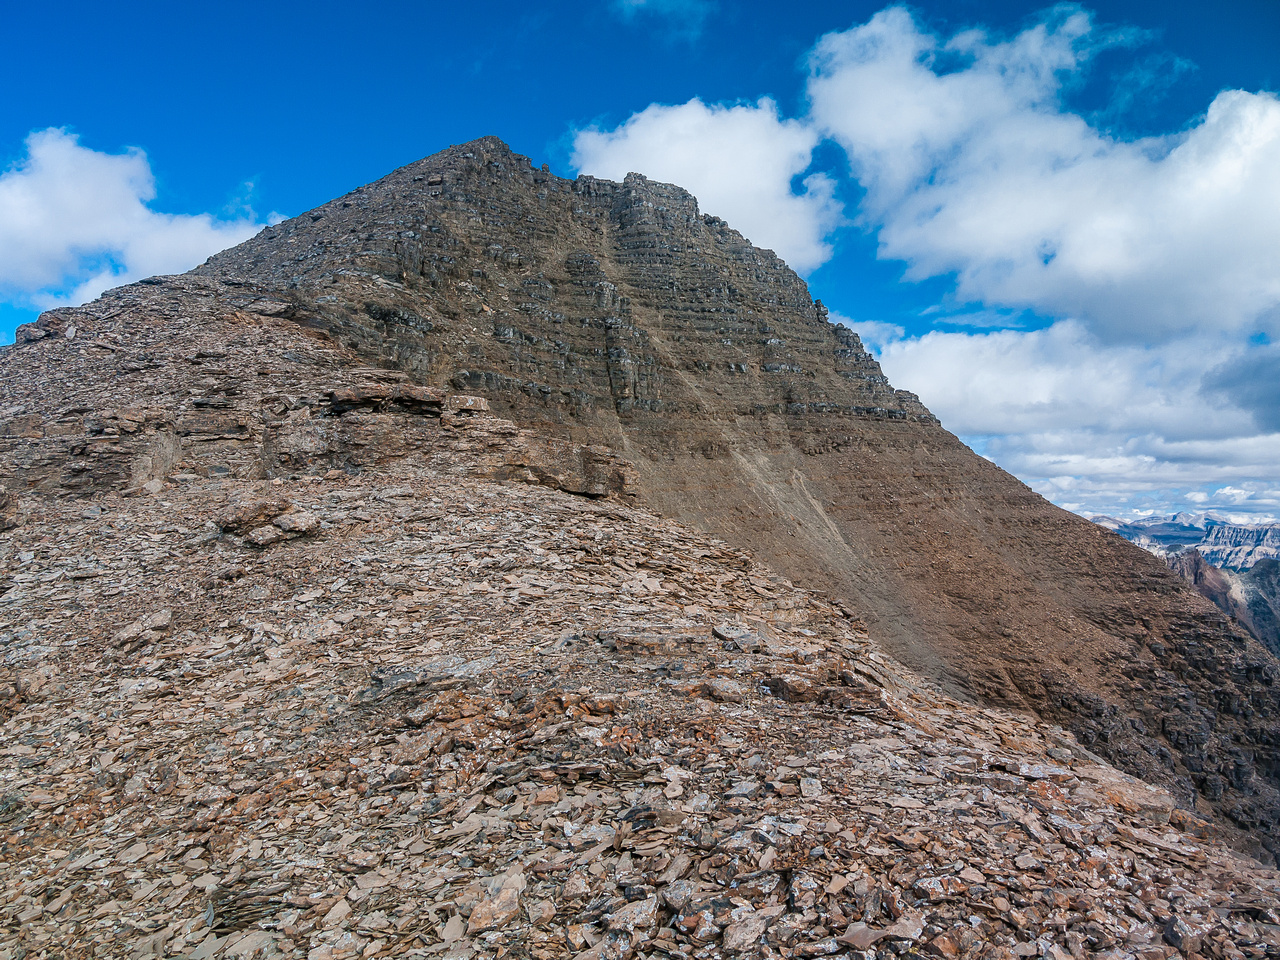 An easy plod to the summit up the south ridge.